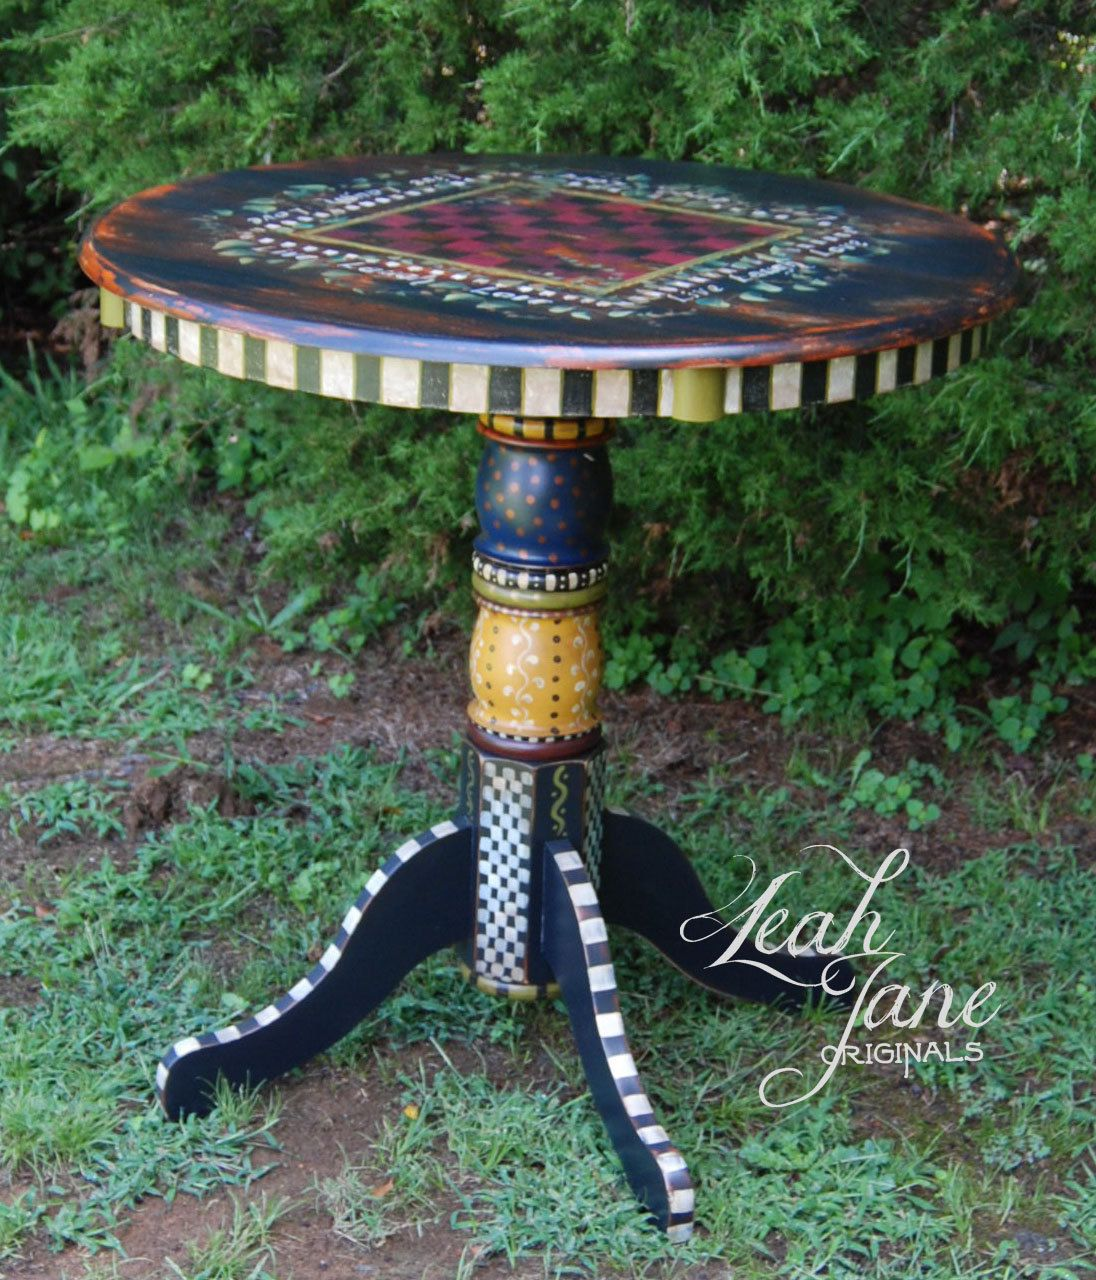 Hand Painted Bistro Pub Checker Board Game Table Bijzettafeltjes Decoratie Meubels